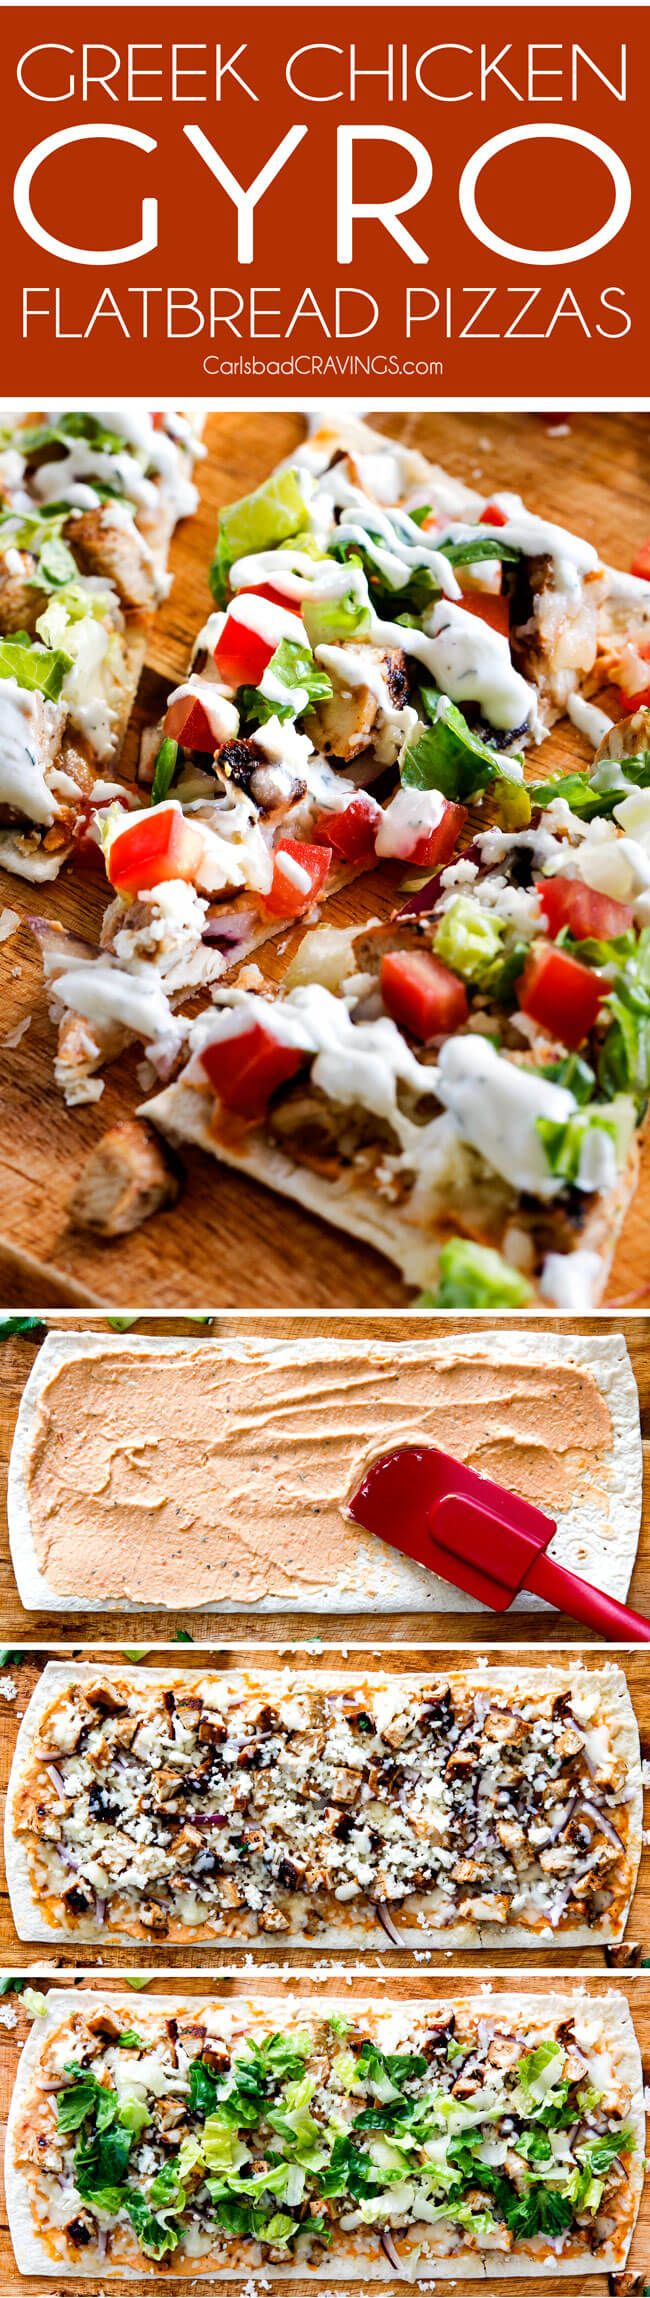 Greek Chicken Gyro Flatbread Pizzas – these are amazing and SO quick and easy!  An explosion of flavors and textures with the most flavorful Greek Chicken and easy Blender Tzatziki!  Great for lunch/dinners or for appetizers and entertaining!  via @carlsbadcraving